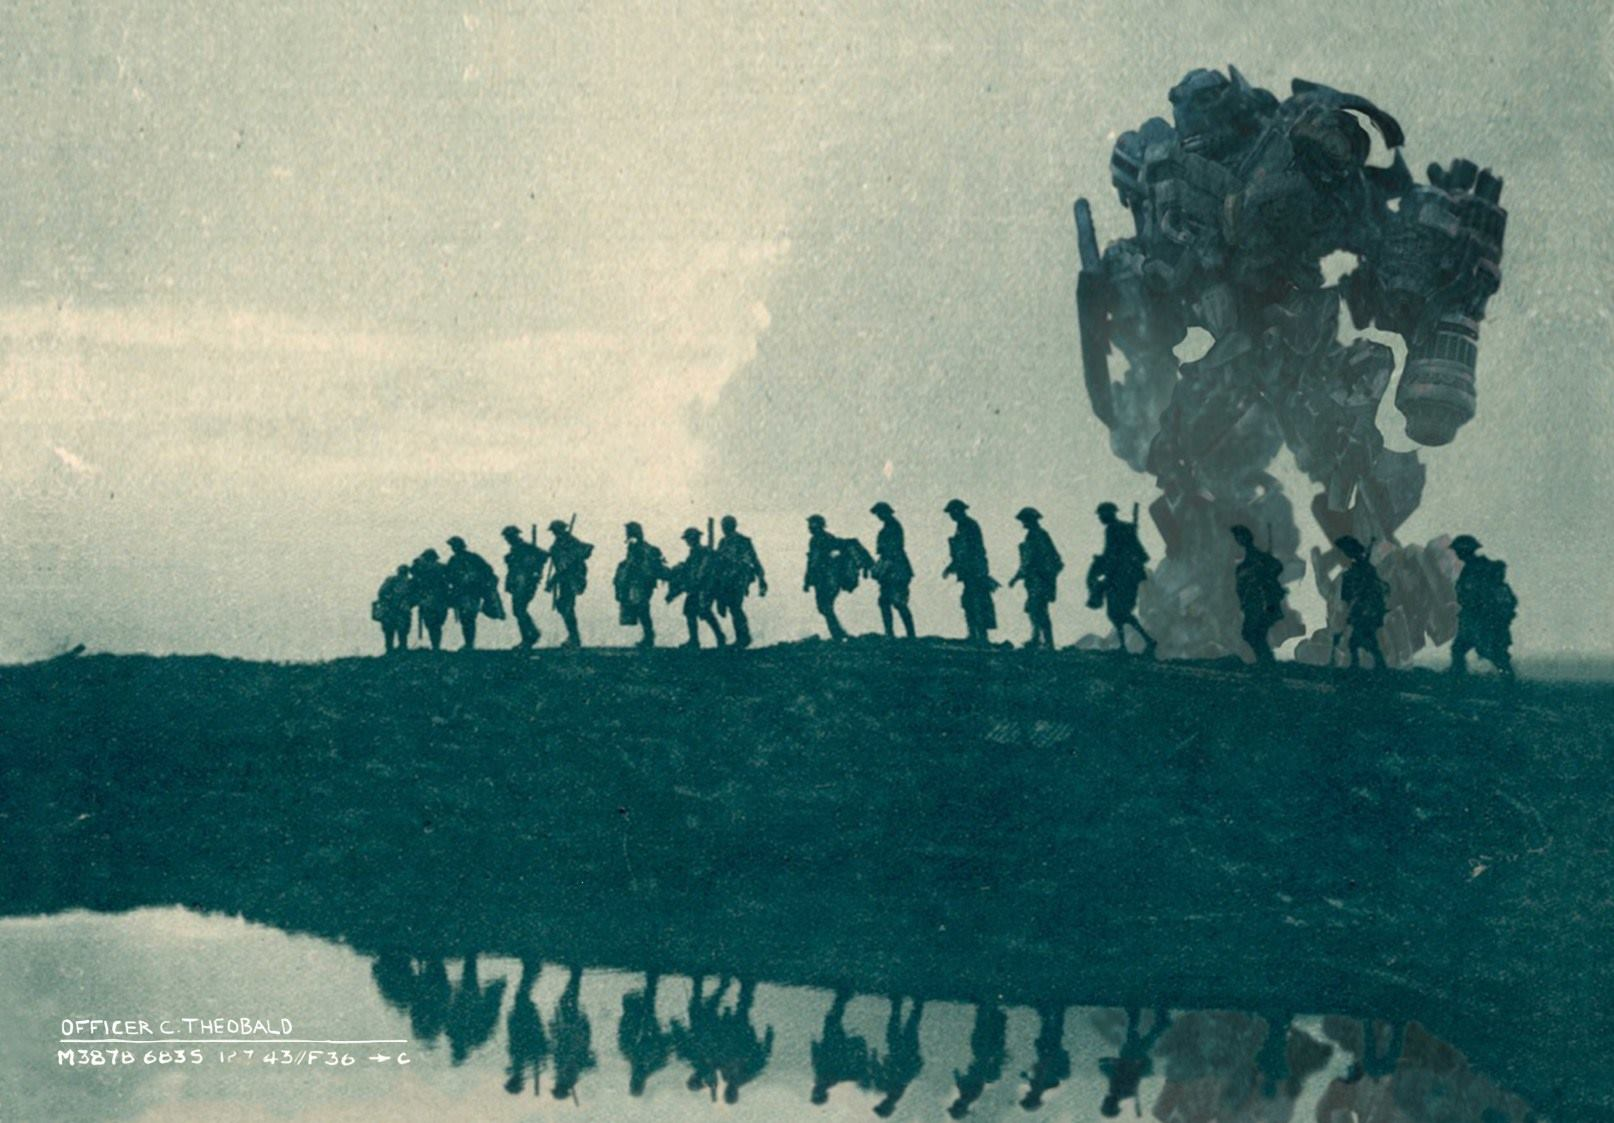 check-out-bumblebee-in-wwii-in-new-transformers-the-last-knight-poster-with-historical-photos3